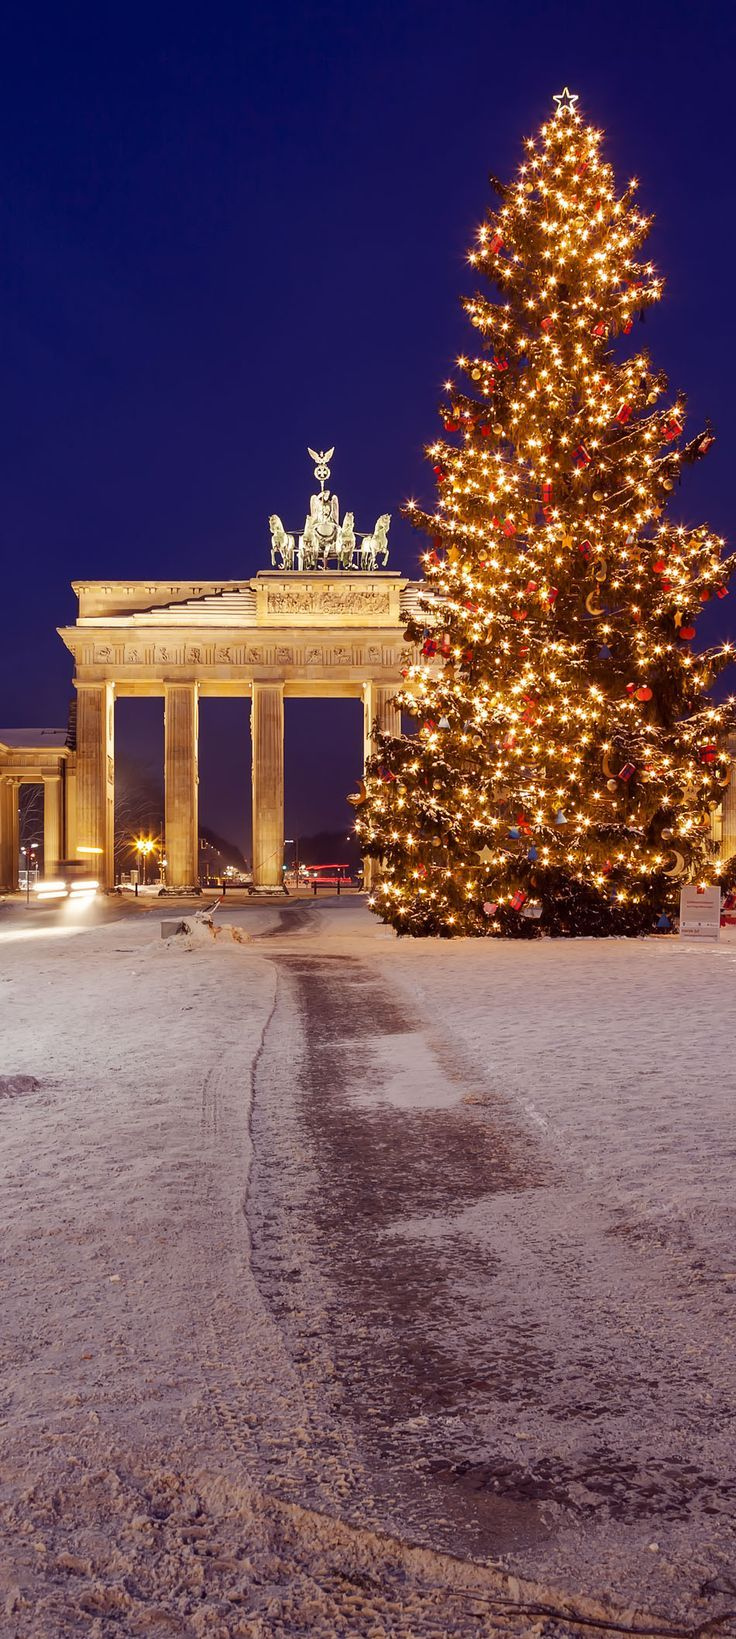 Christmas at Brandenburg gate in winter, Berlin http://imgsnpics.com/christmas-at-brandenburg-gate-in-winter-berlin/